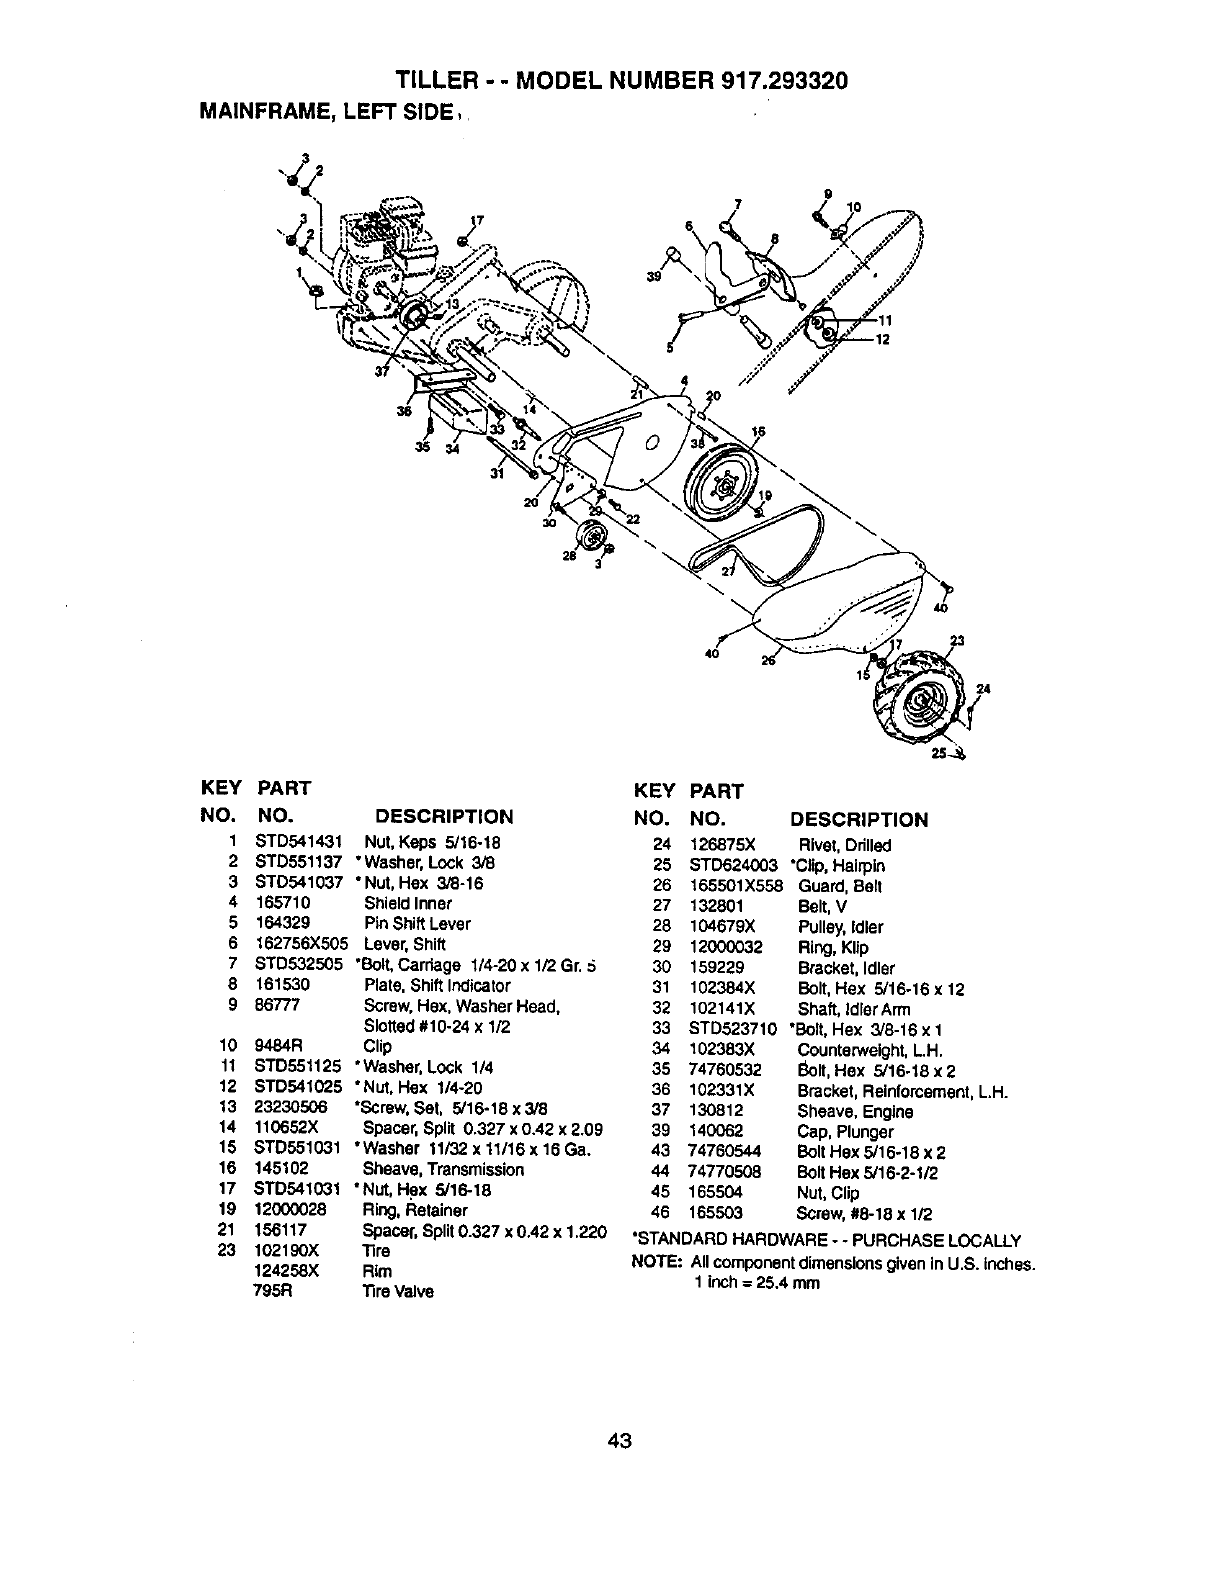 Page 23 of Craftsman Tiller 917.29332 User Guide